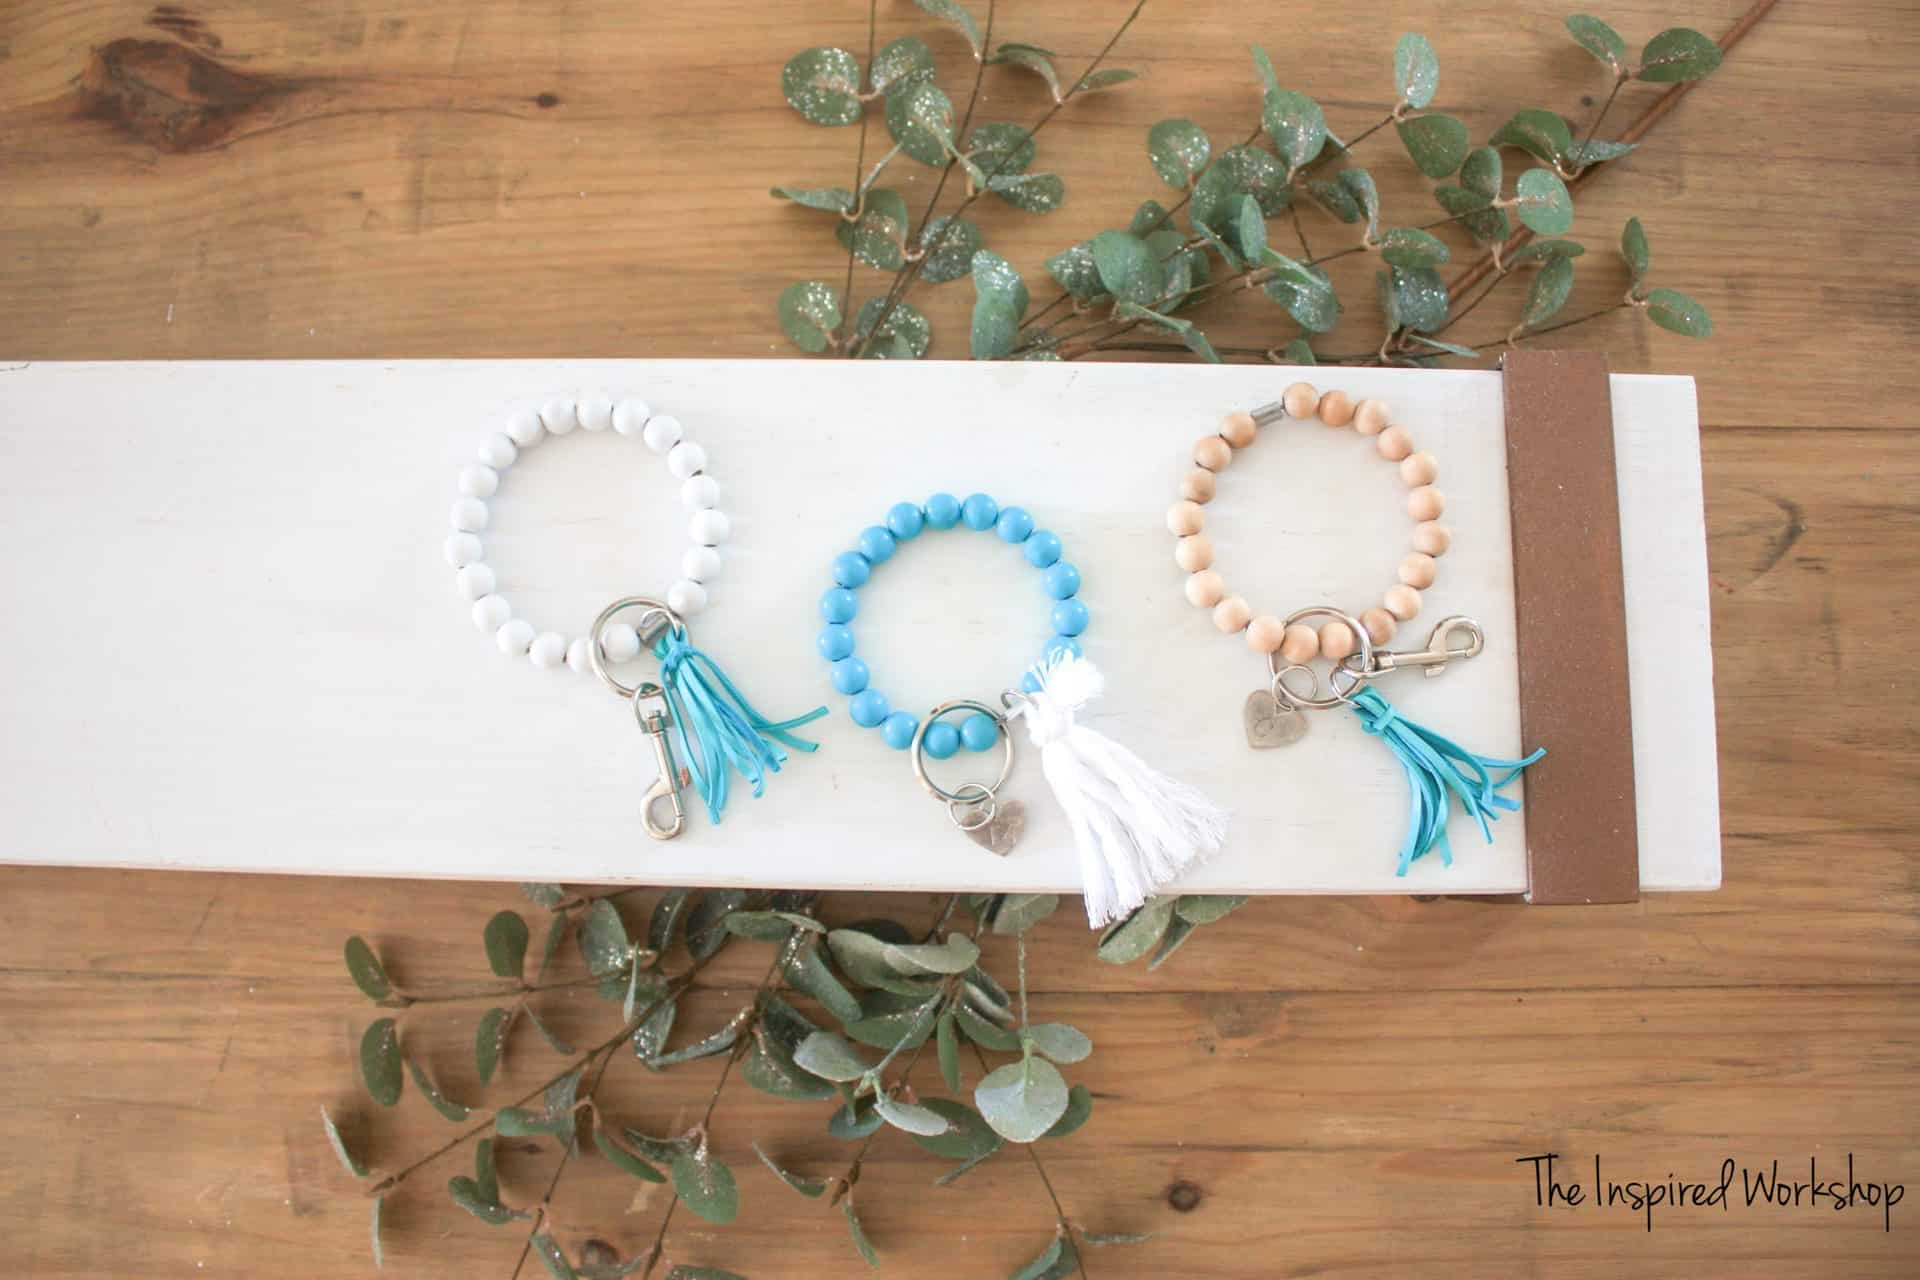 DIY Key Chain Bracelet